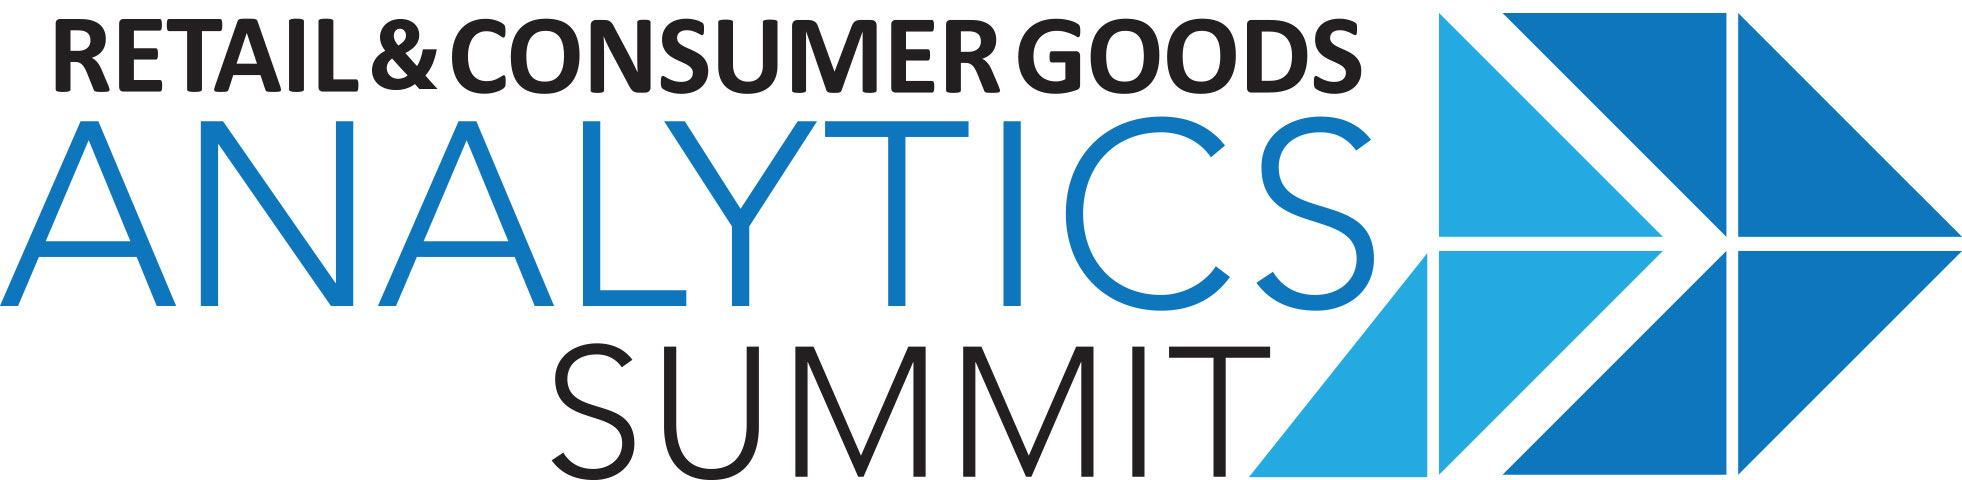 Retail & Consumer Goods Analytics Summit - 2019